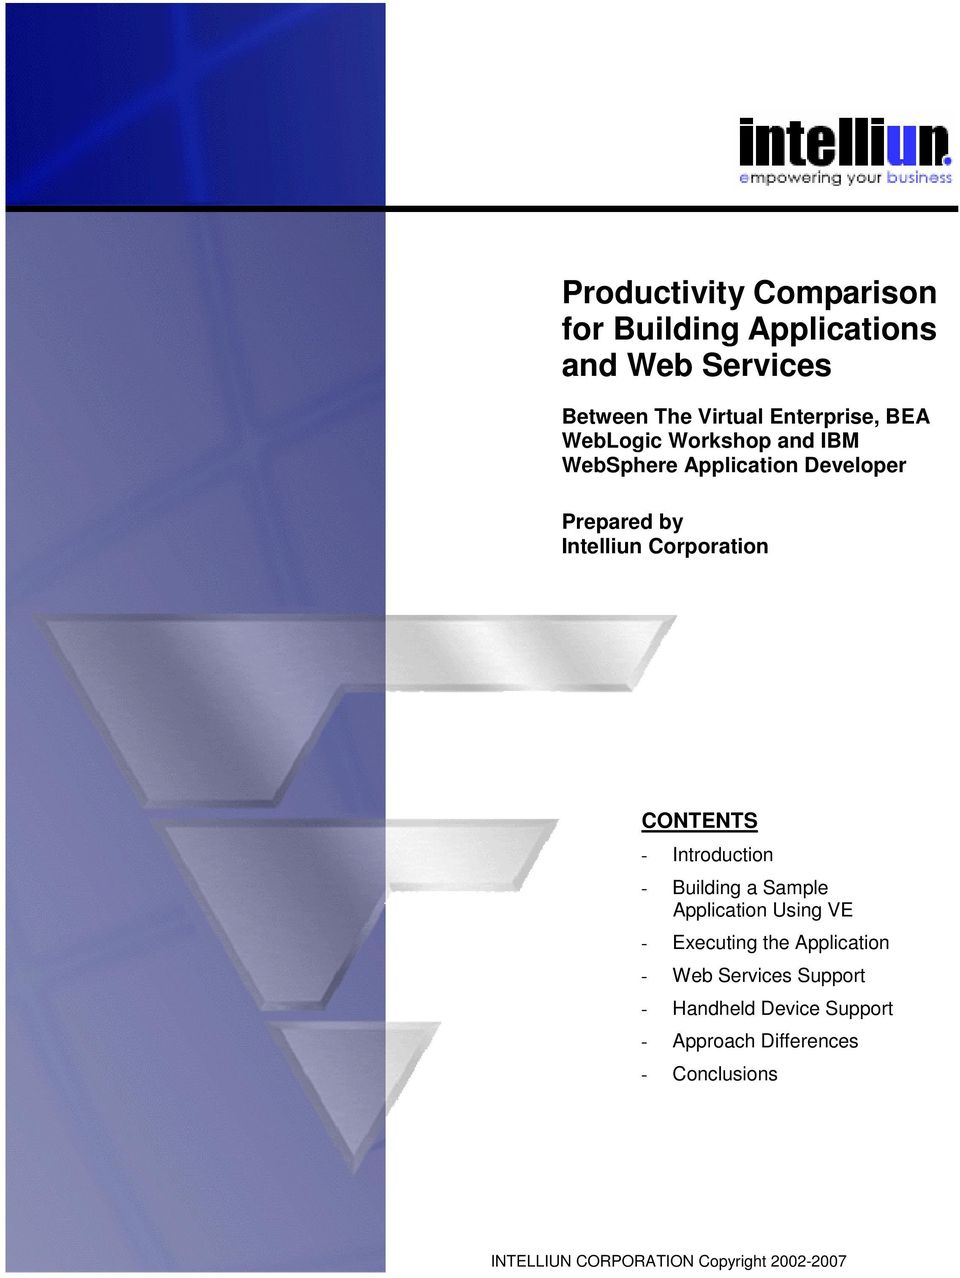 Introduction - Building a Sample Application Using VE - Executing the Application - Web Services